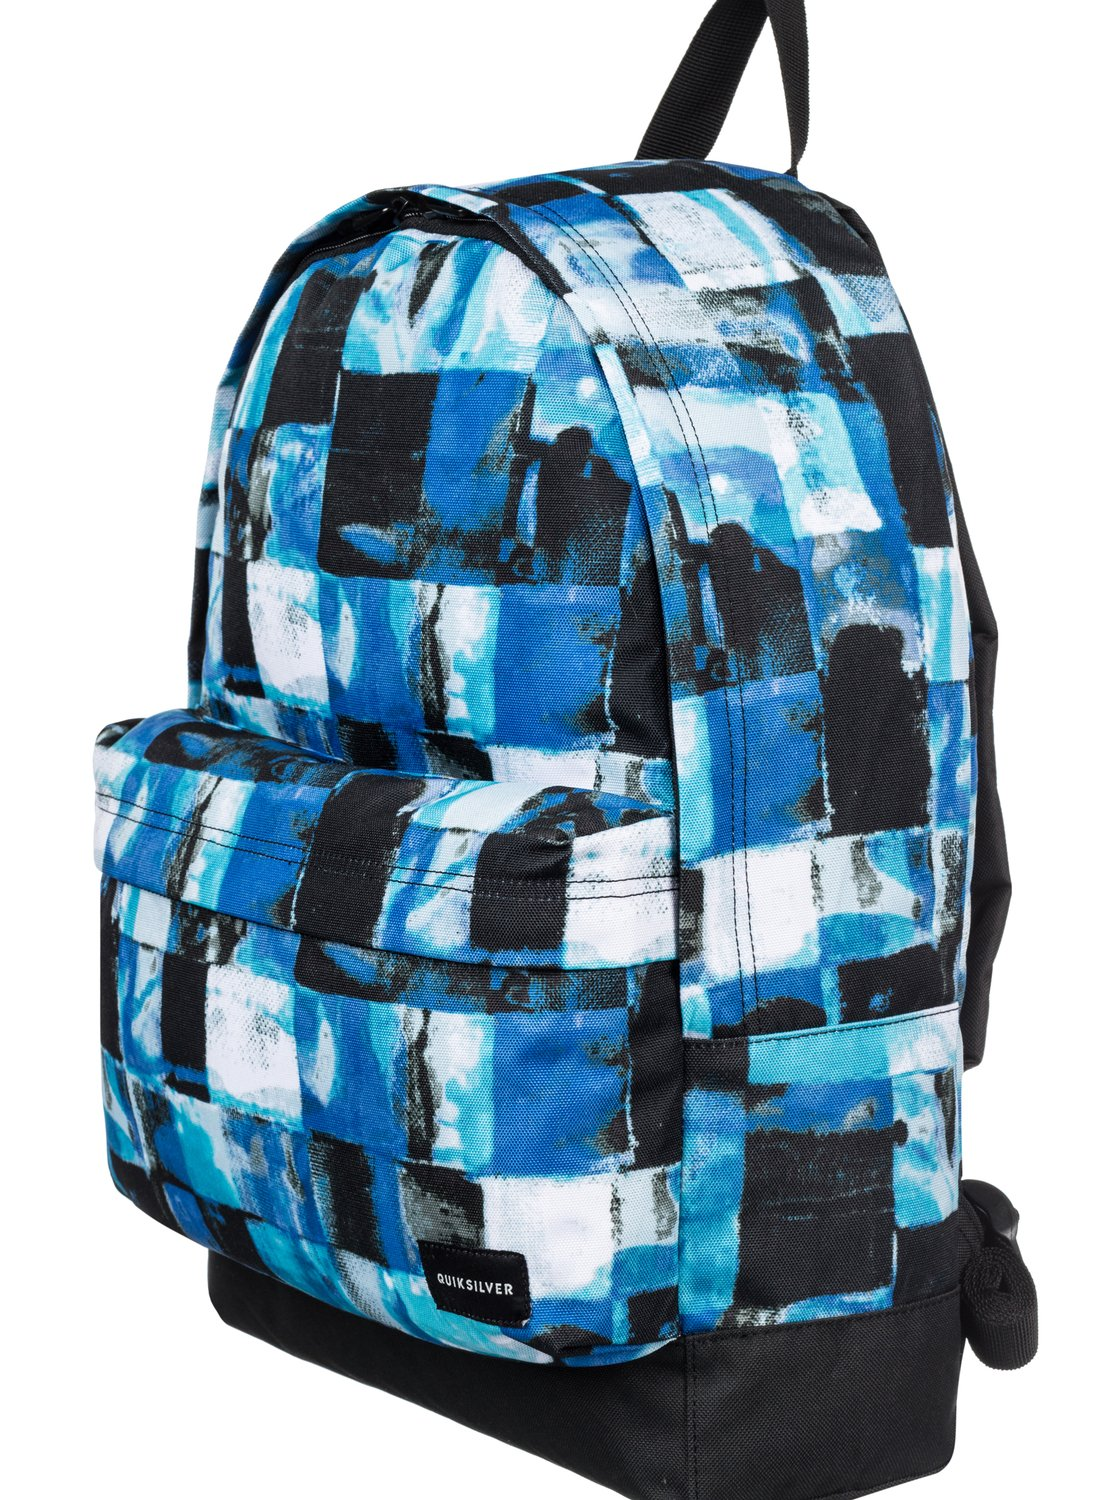 Sac à dos Quiksilver Everyday Poster Turkish Sea Resin Check bleu